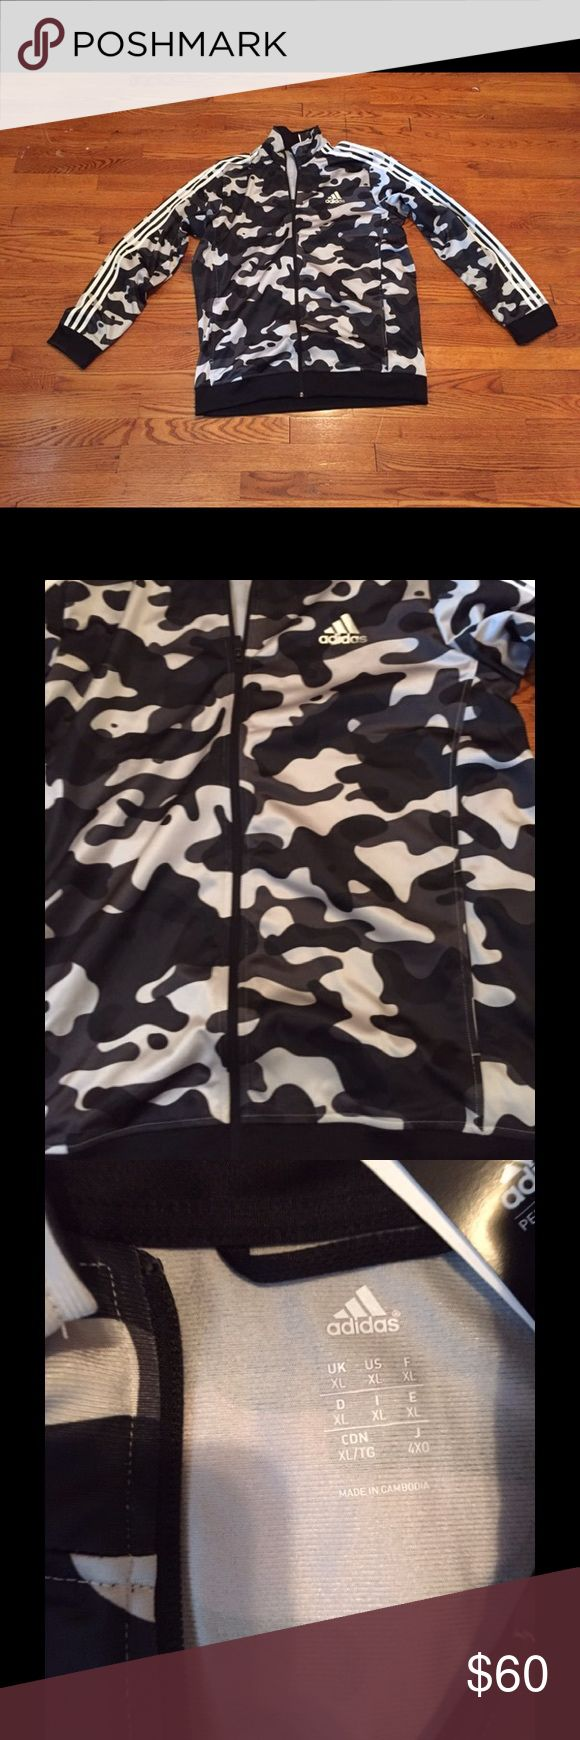 New Adidas Camouflage Zip Up Jacket. New Adidas Camouflage Zip Up Jacket. Size. M Adidas Jackets & Coats Lightweight & Shirt Jackets